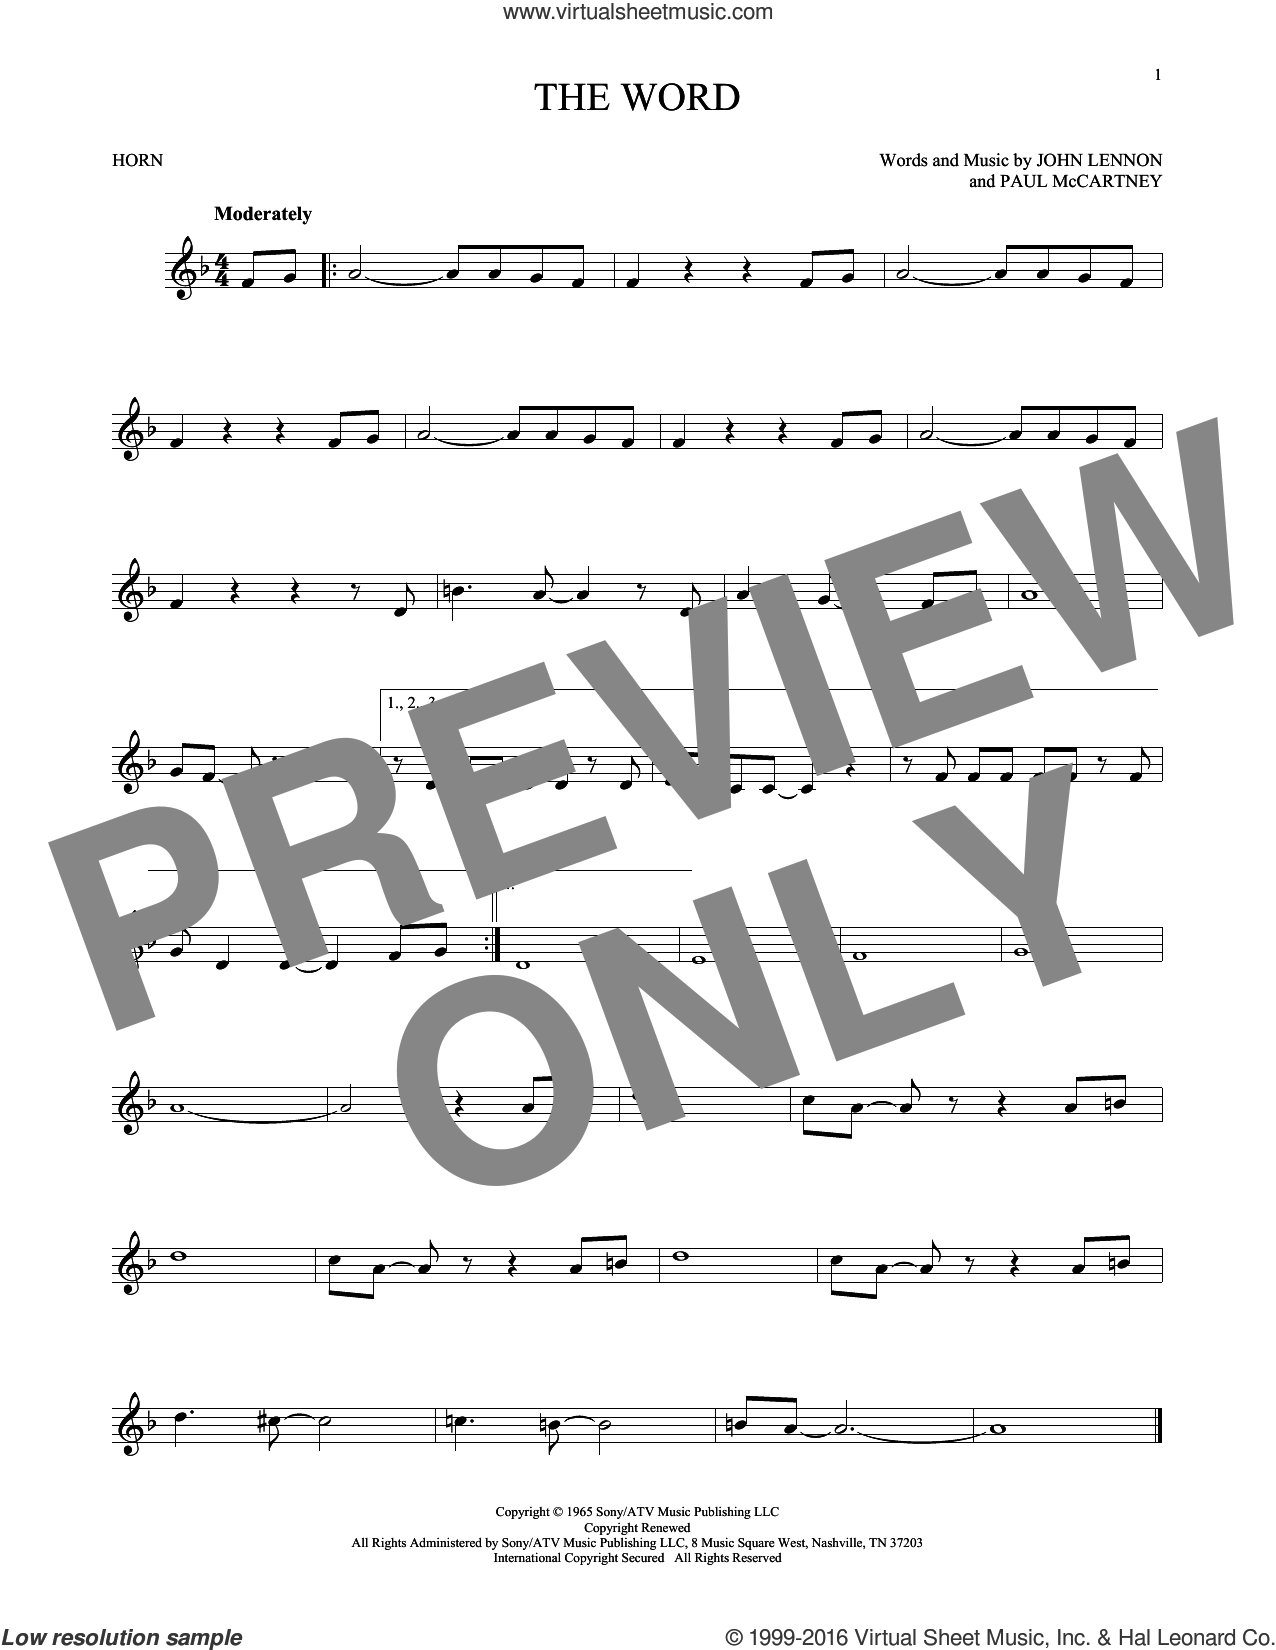 The Word sheet music for horn solo by Paul McCartney